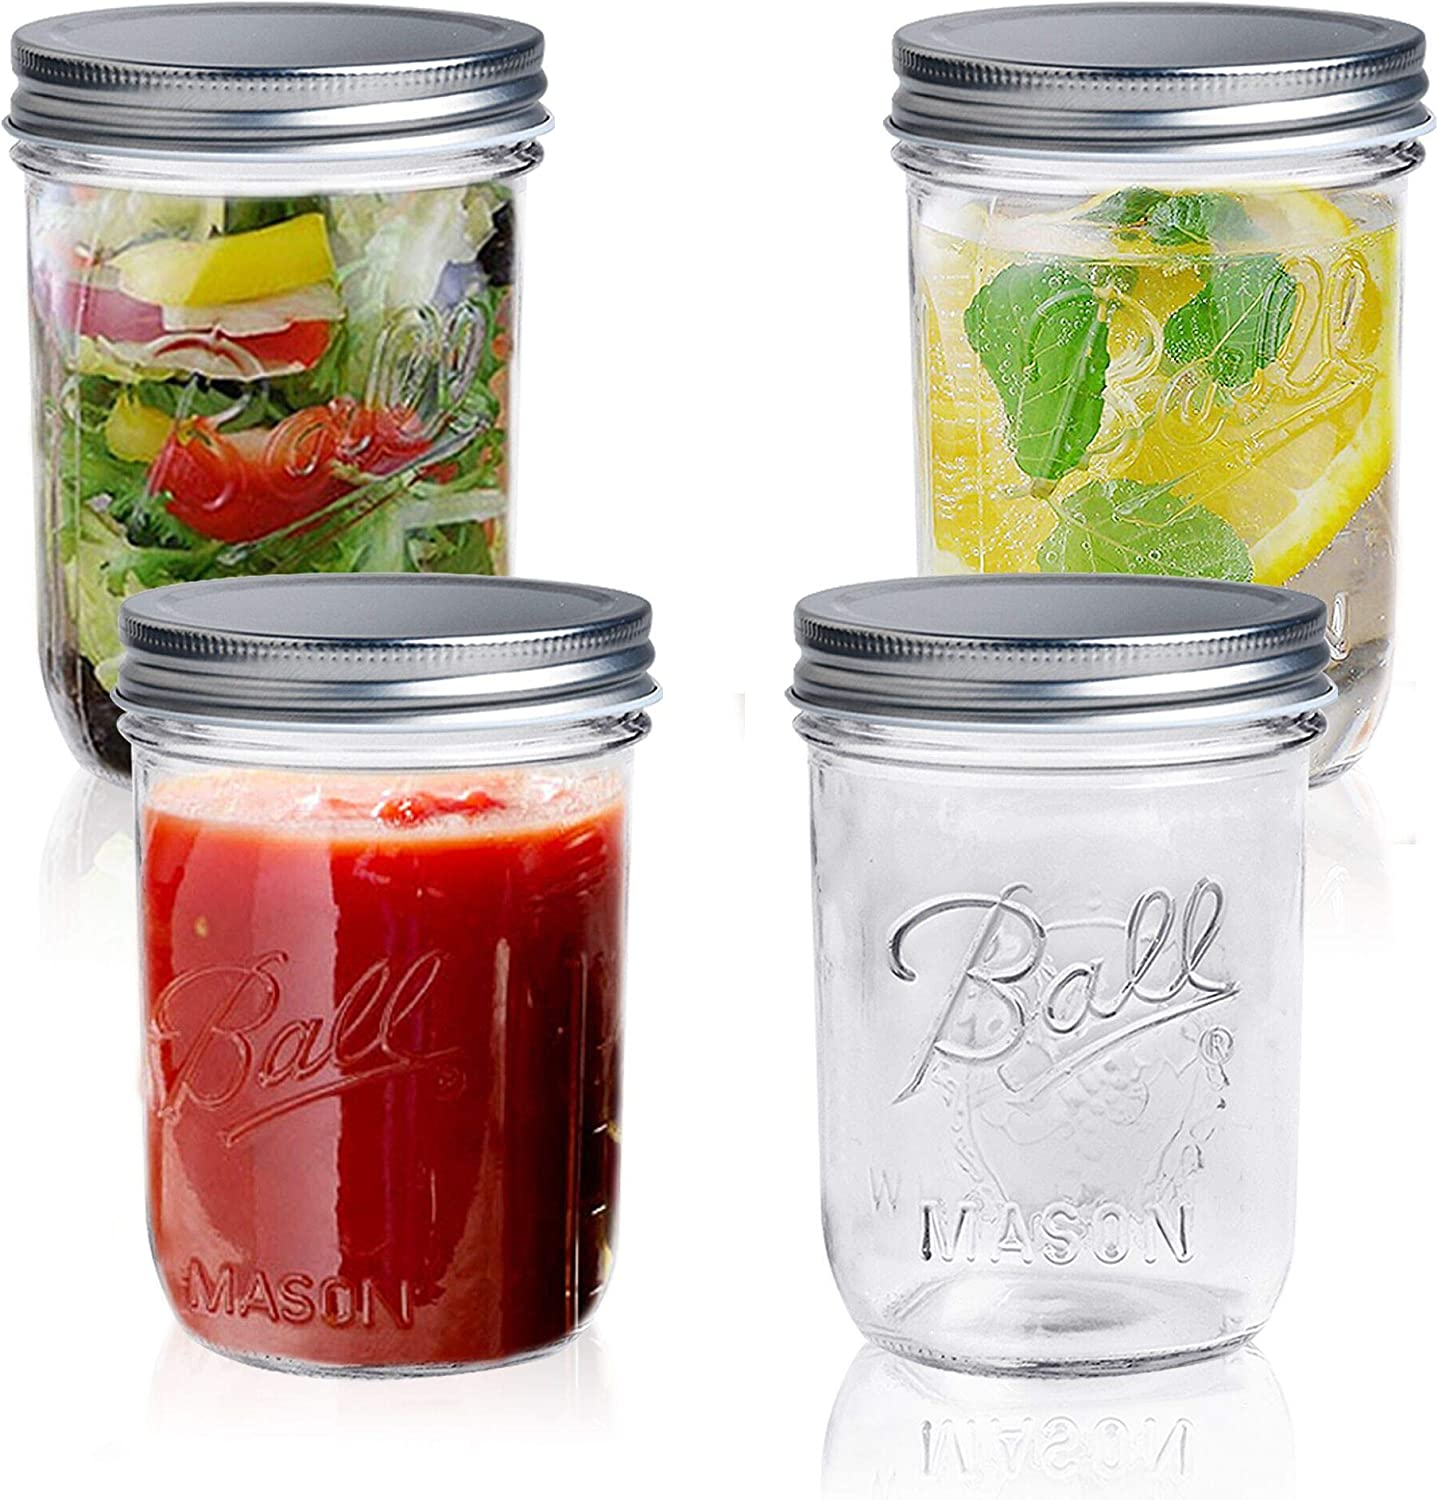 Wide Mouth Mason Jars - Akamino 4 Pack Clear Glass with Airtight Lids 16 oz Canning glass Jars for Food Storage, Drinking,Jam, Honey